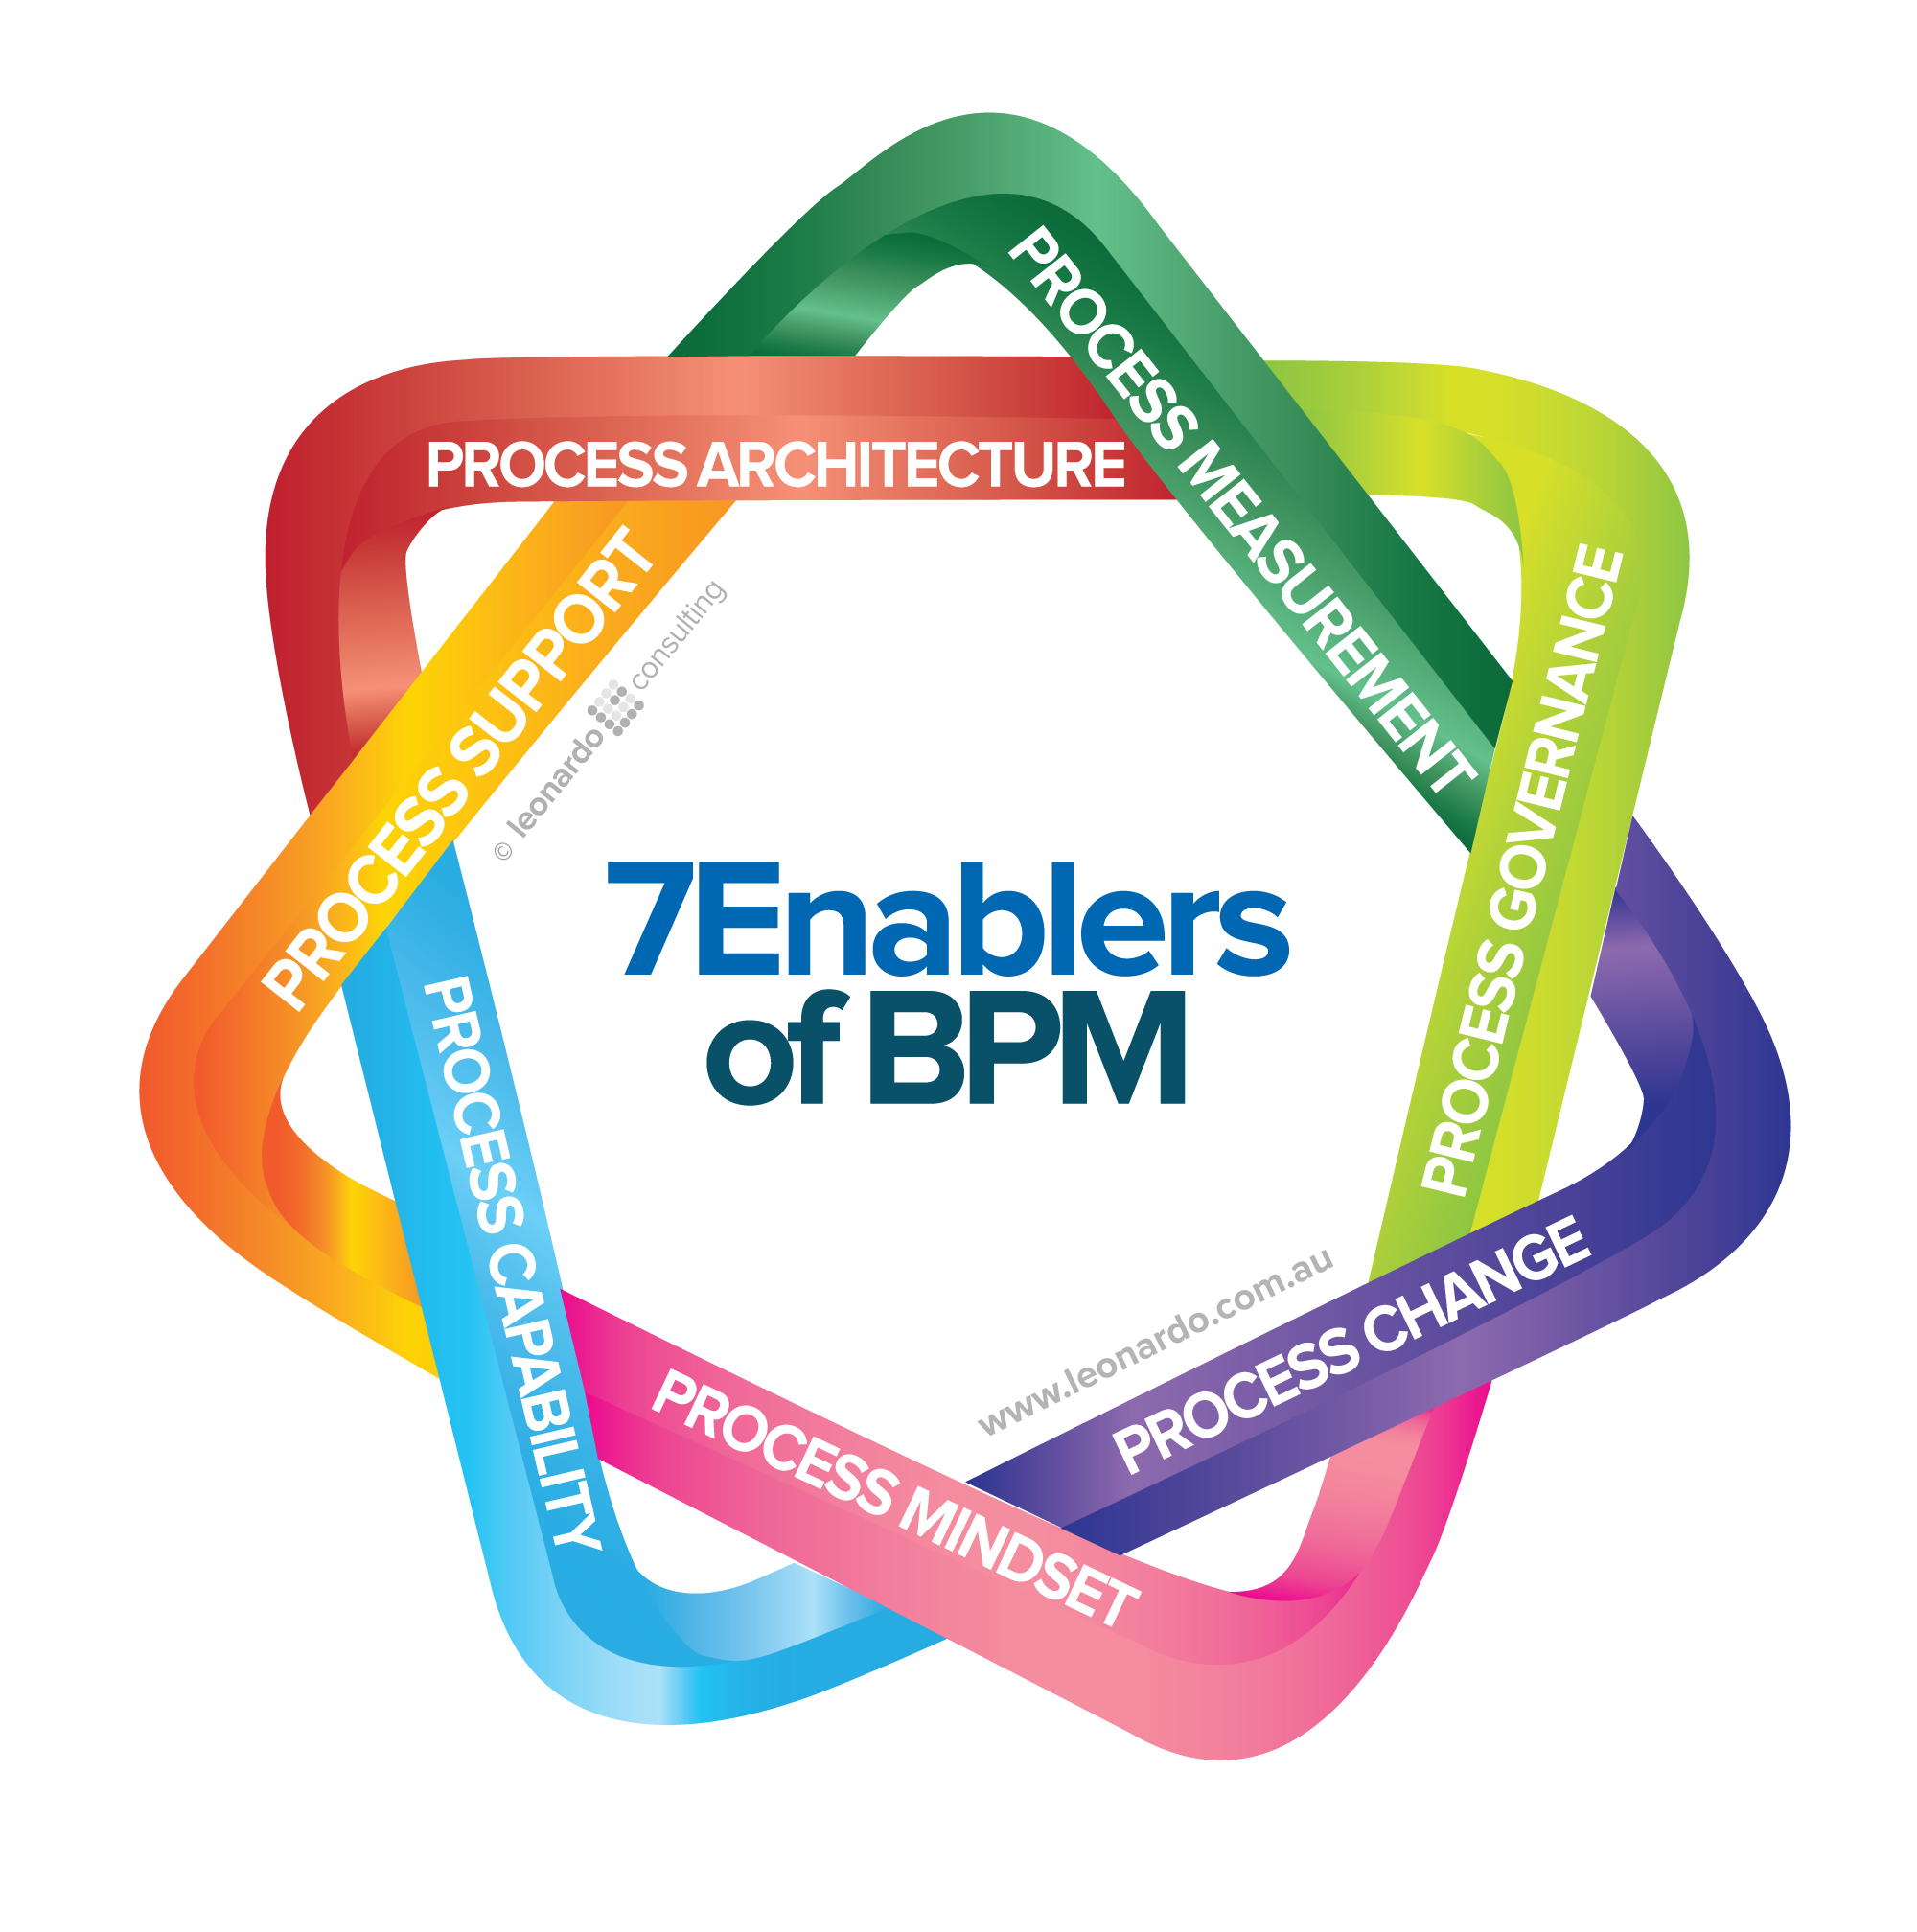 15-Mobious7EnablersLOGO_03